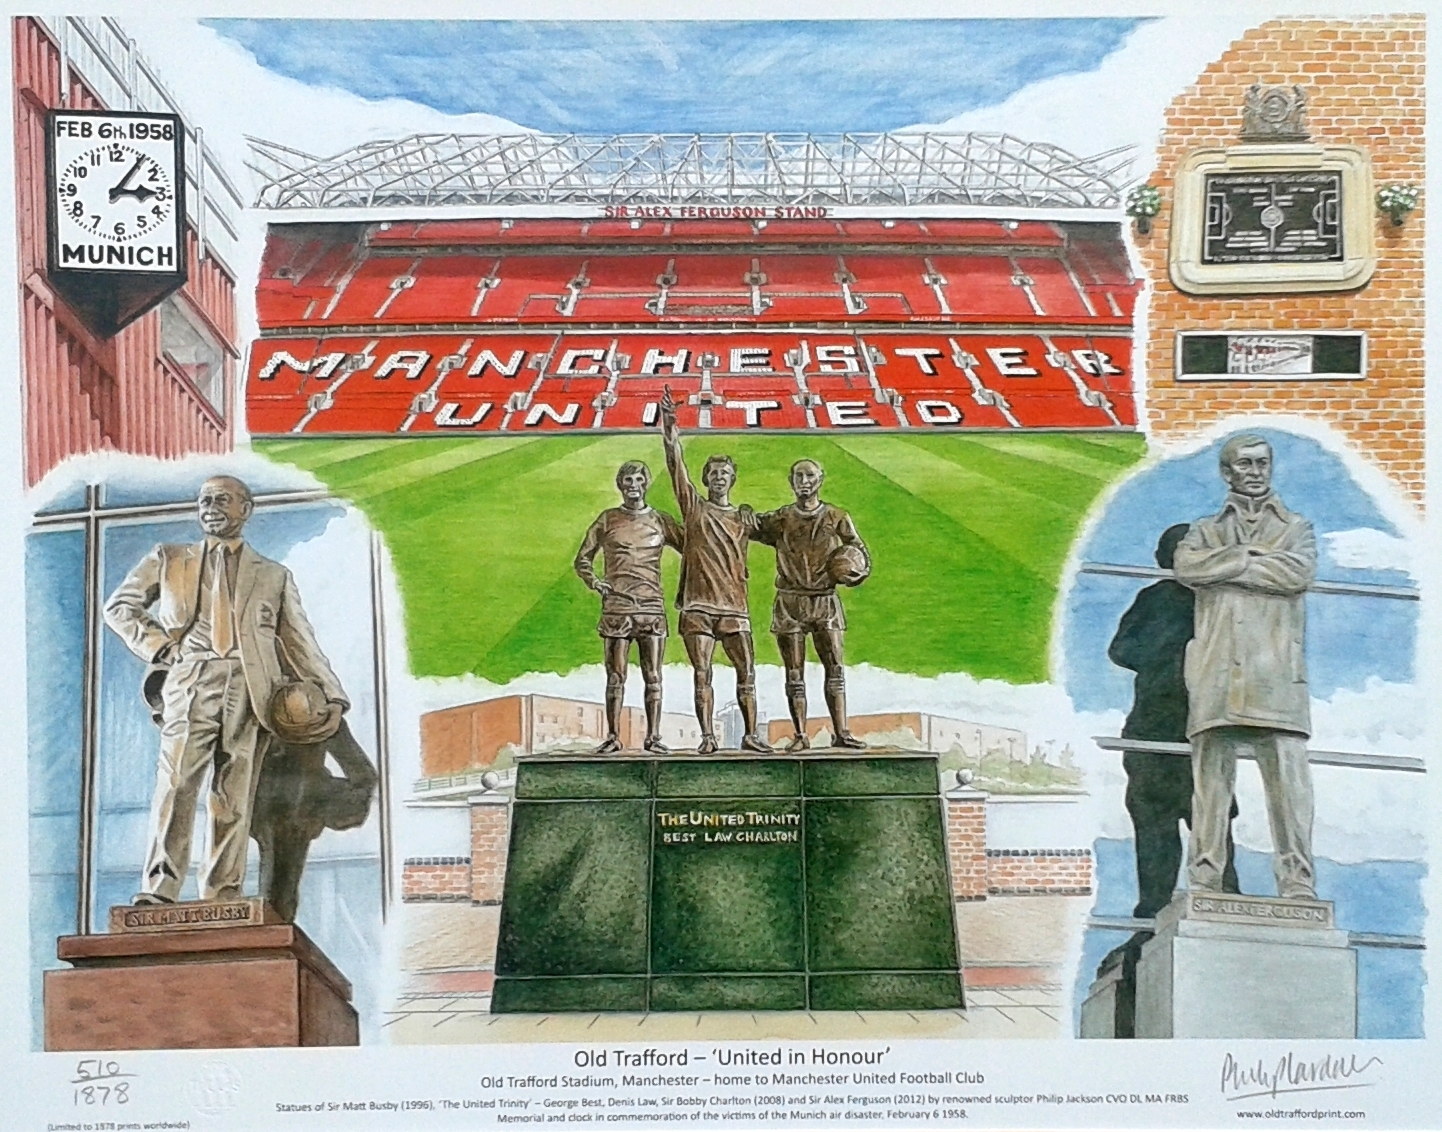 Manchester United 'United in Honour' fine art print - unframed